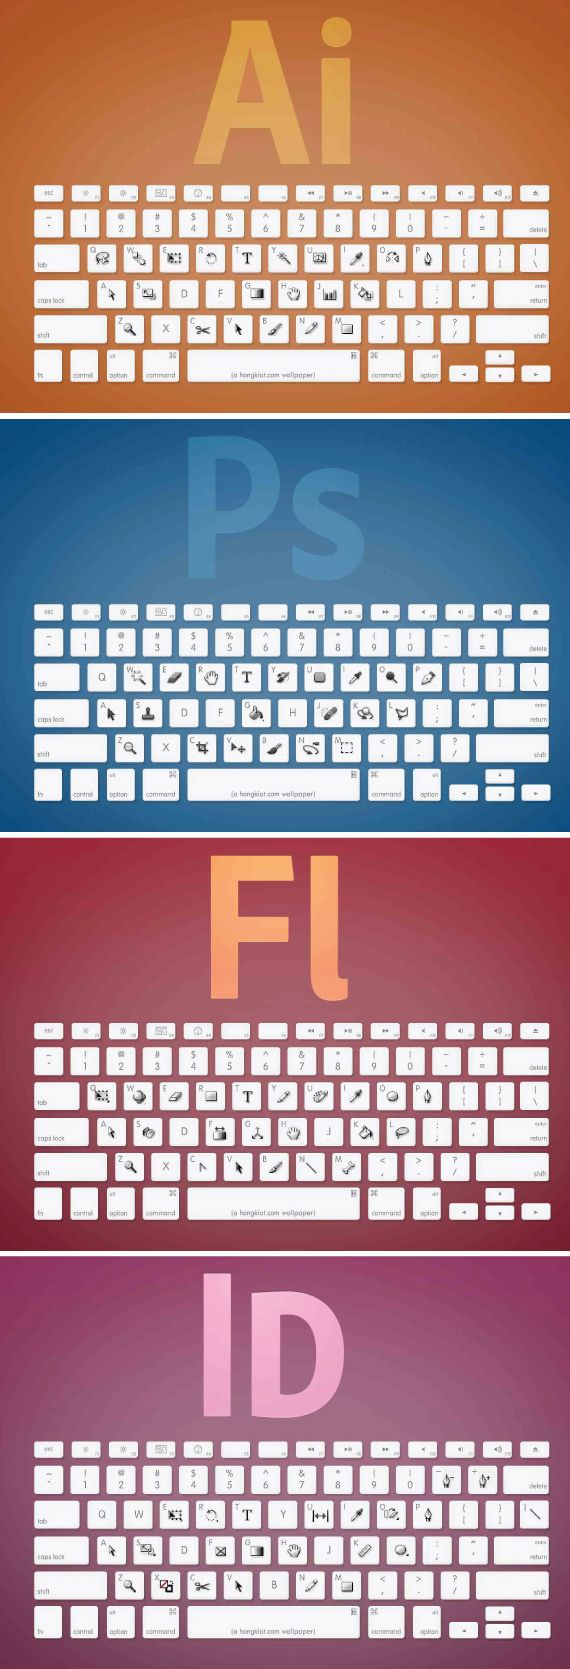 #Adobe #Shortcuts un bon Reminder pour les #Graphistes